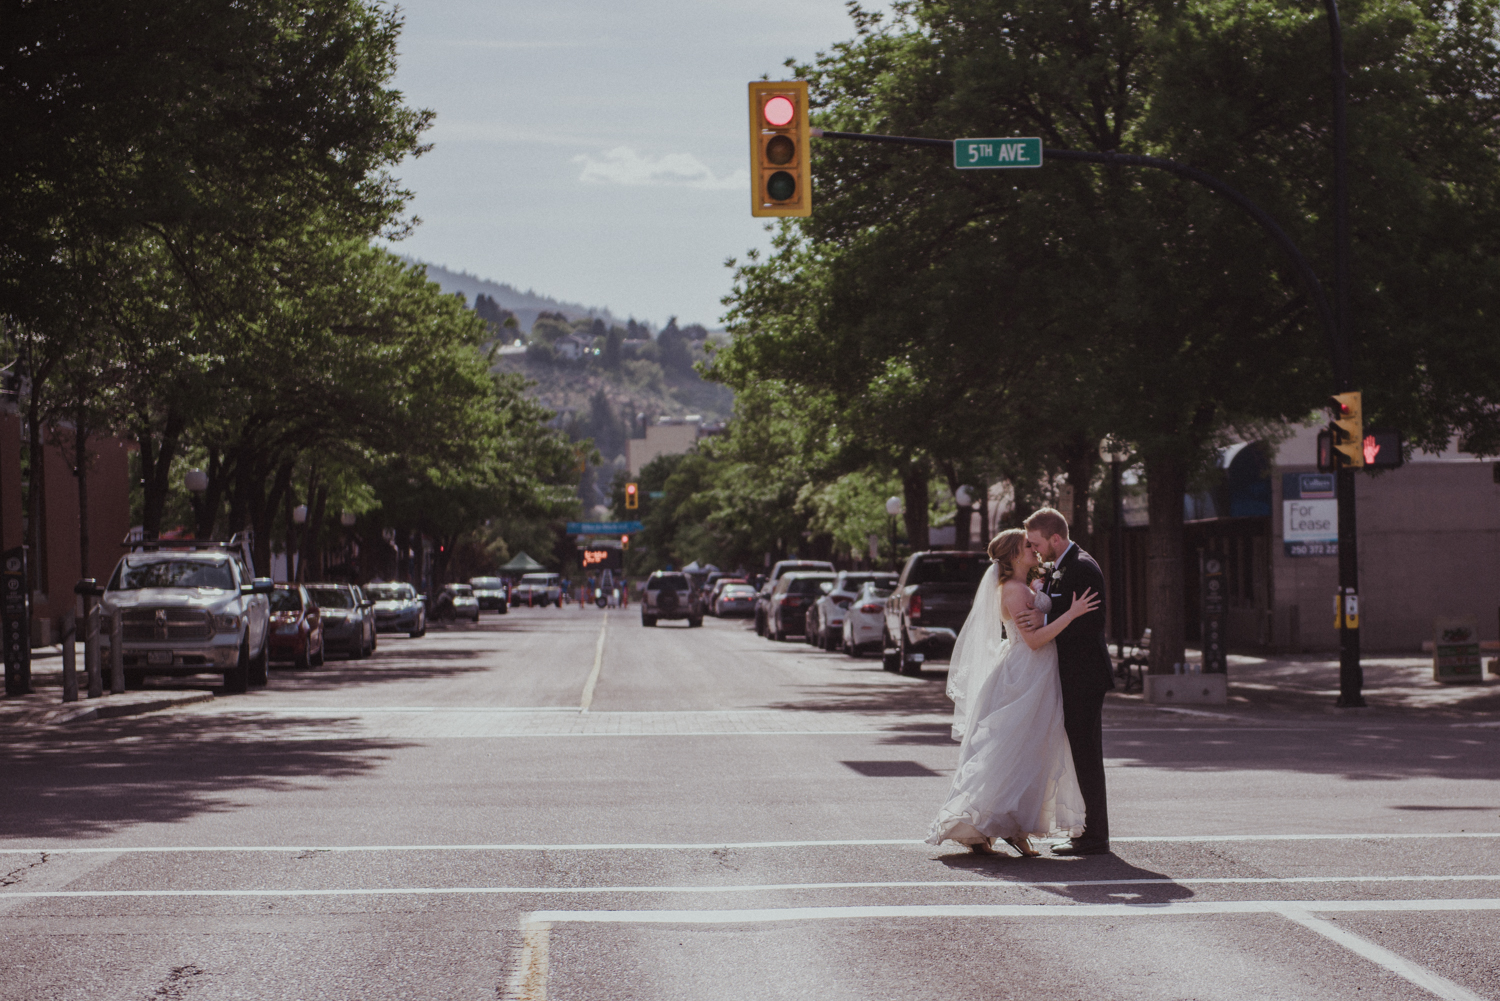 Downtown-Kamloops-Wedding-61.jpg